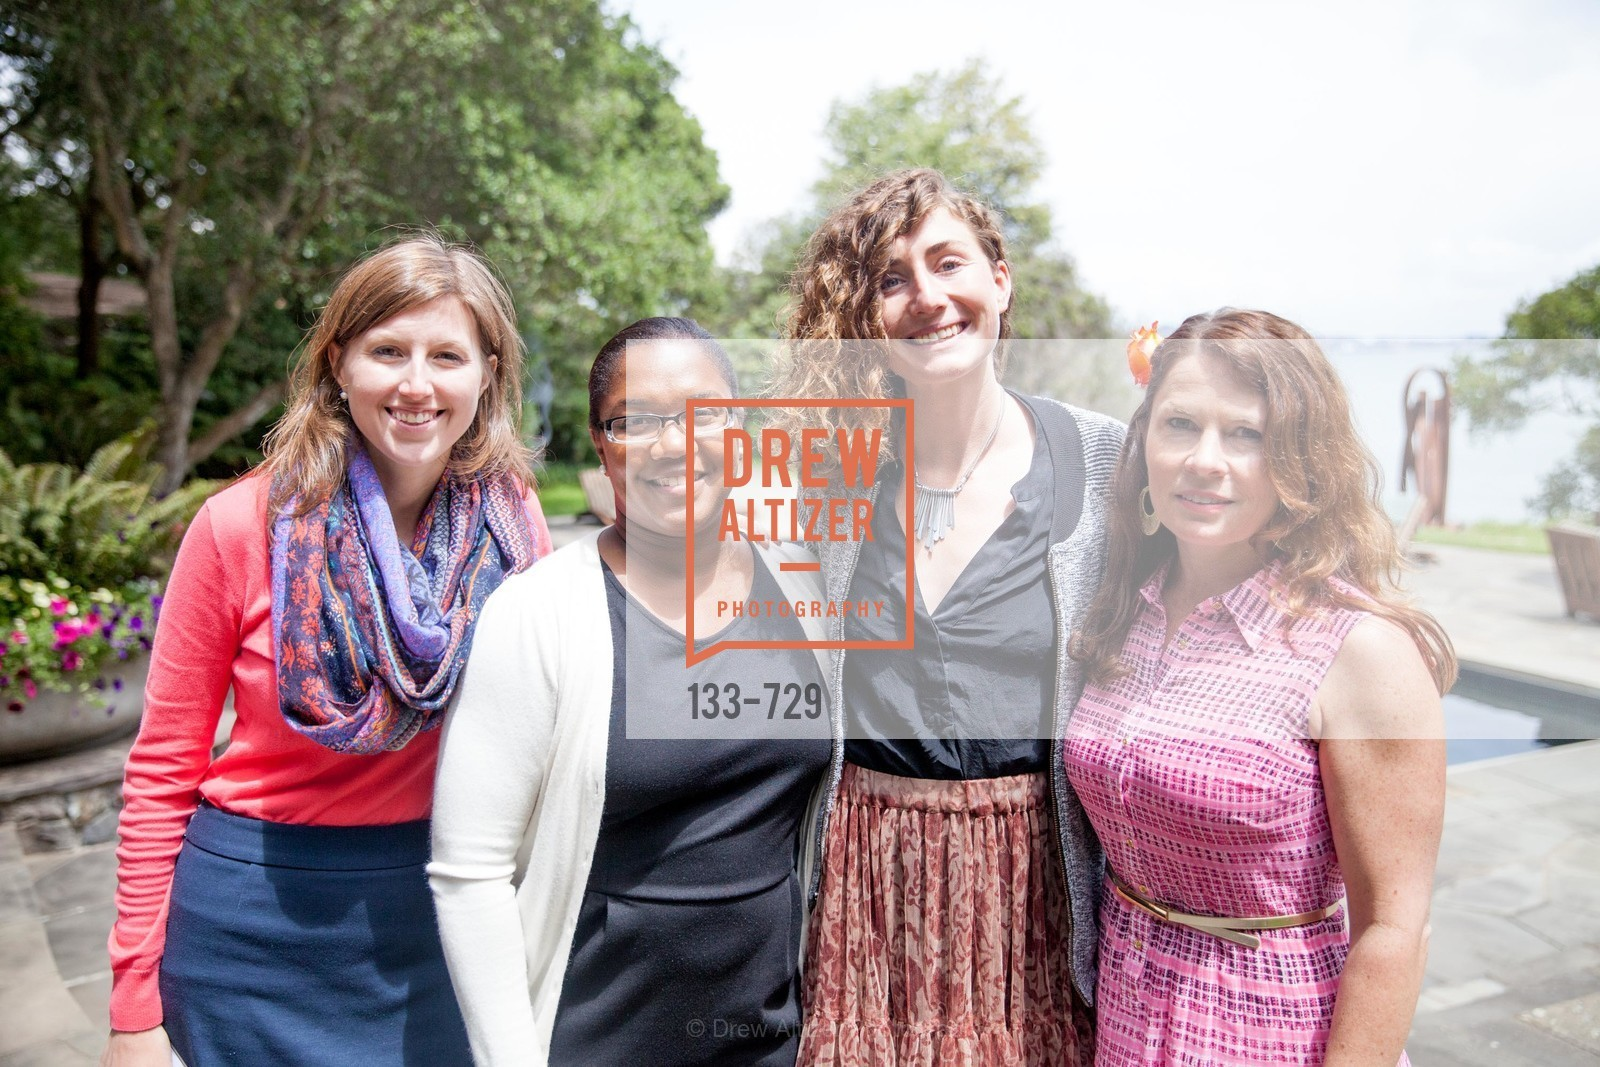 Megan O'Donahue, Carla Coleman, Isabelle Drever, Erin Caulfield, THE TRUST FOR PUBLIC LAND Luncheon Hosted by THE DREVER FAMILY FOUNDATION, US, May 15th, 2015,Drew Altizer, Drew Altizer Photography, full-service agency, private events, San Francisco photographer, photographer california